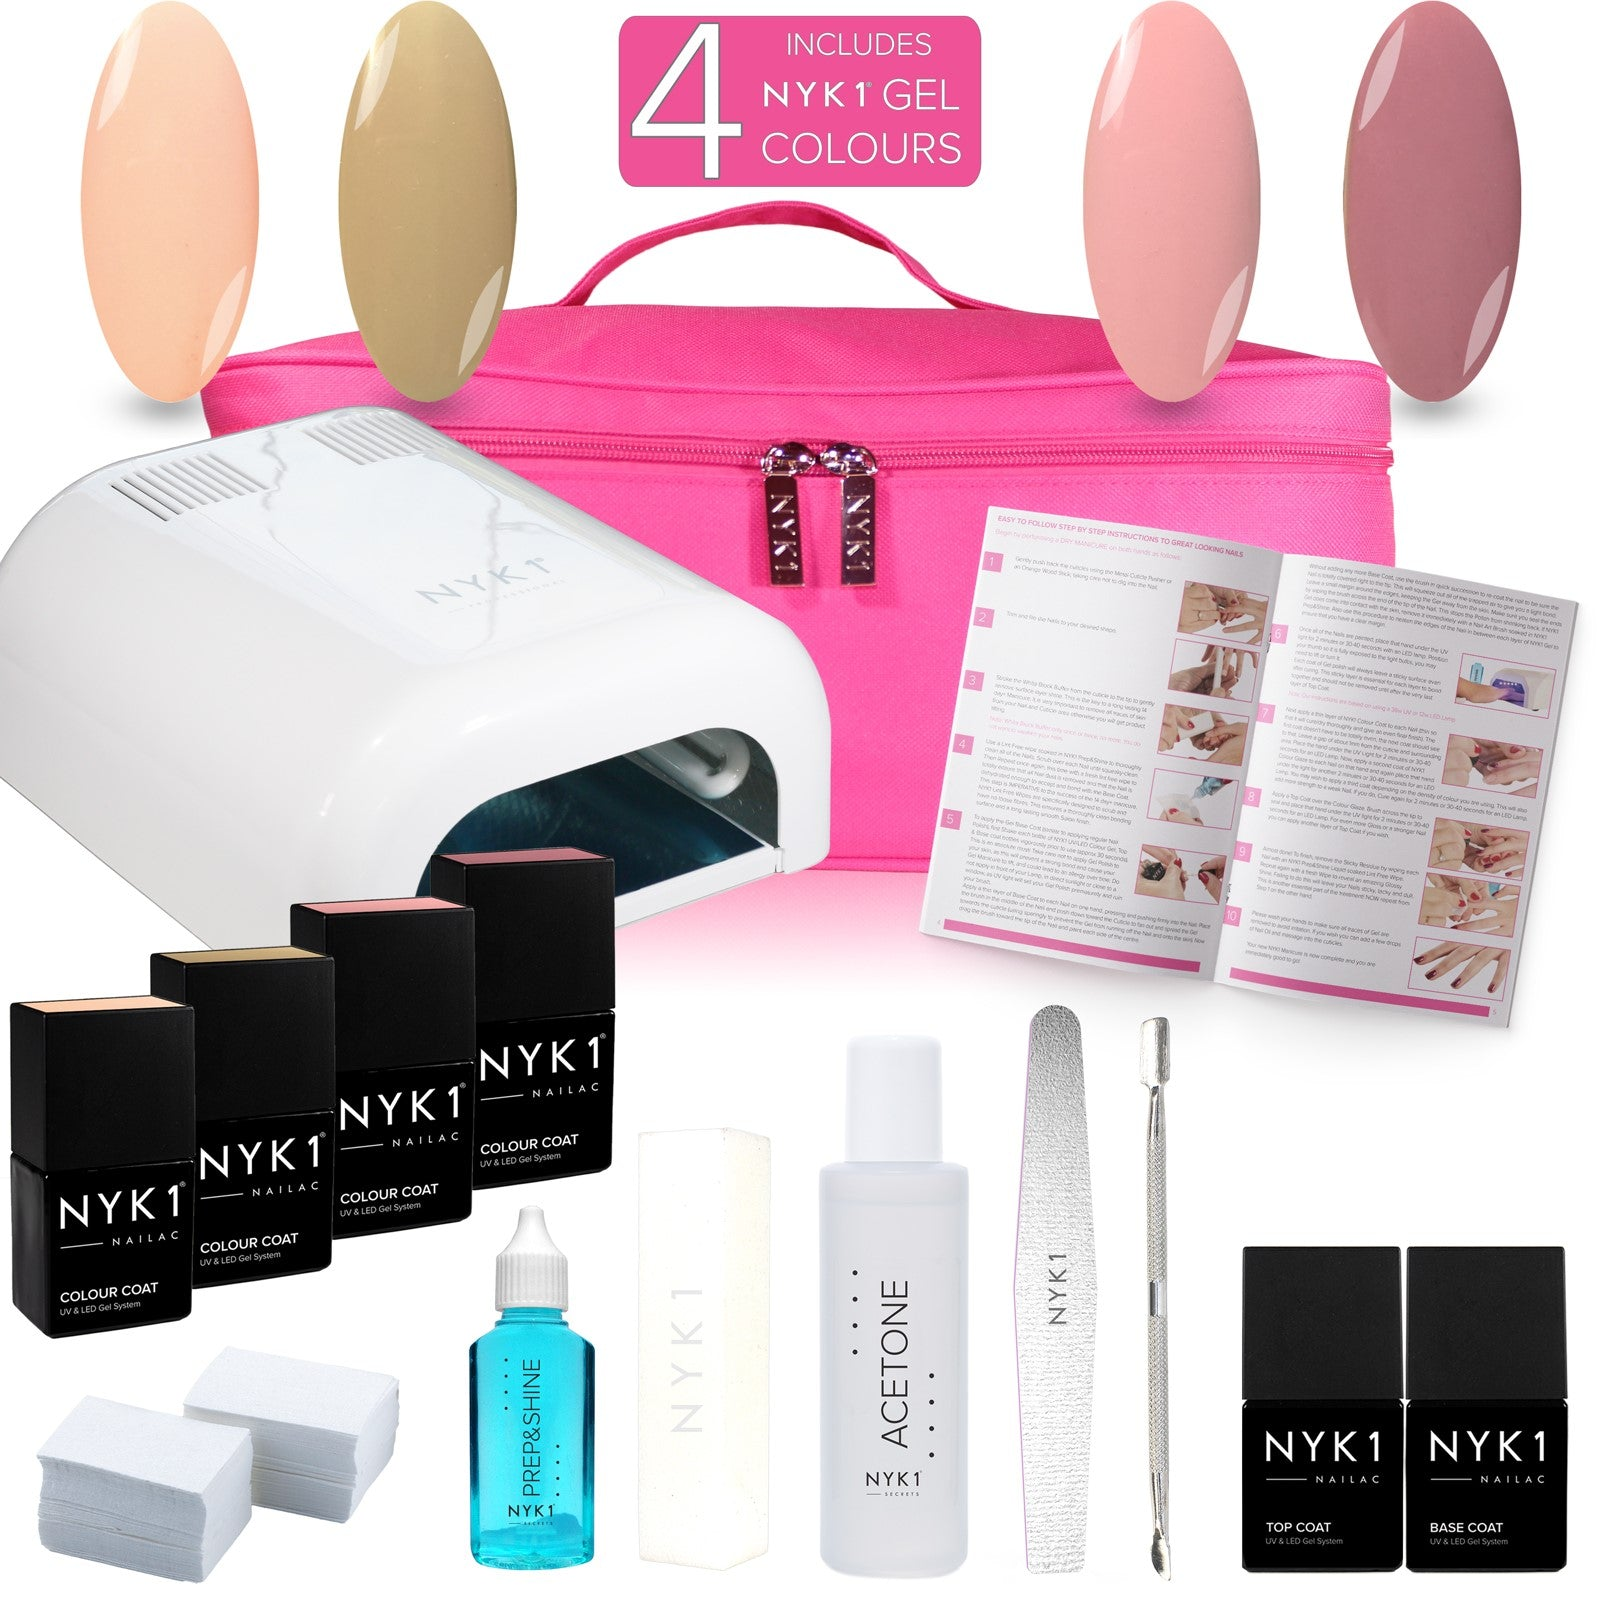 NYK1 Manhattan Kit with 4 Colour Gel Nail Polish